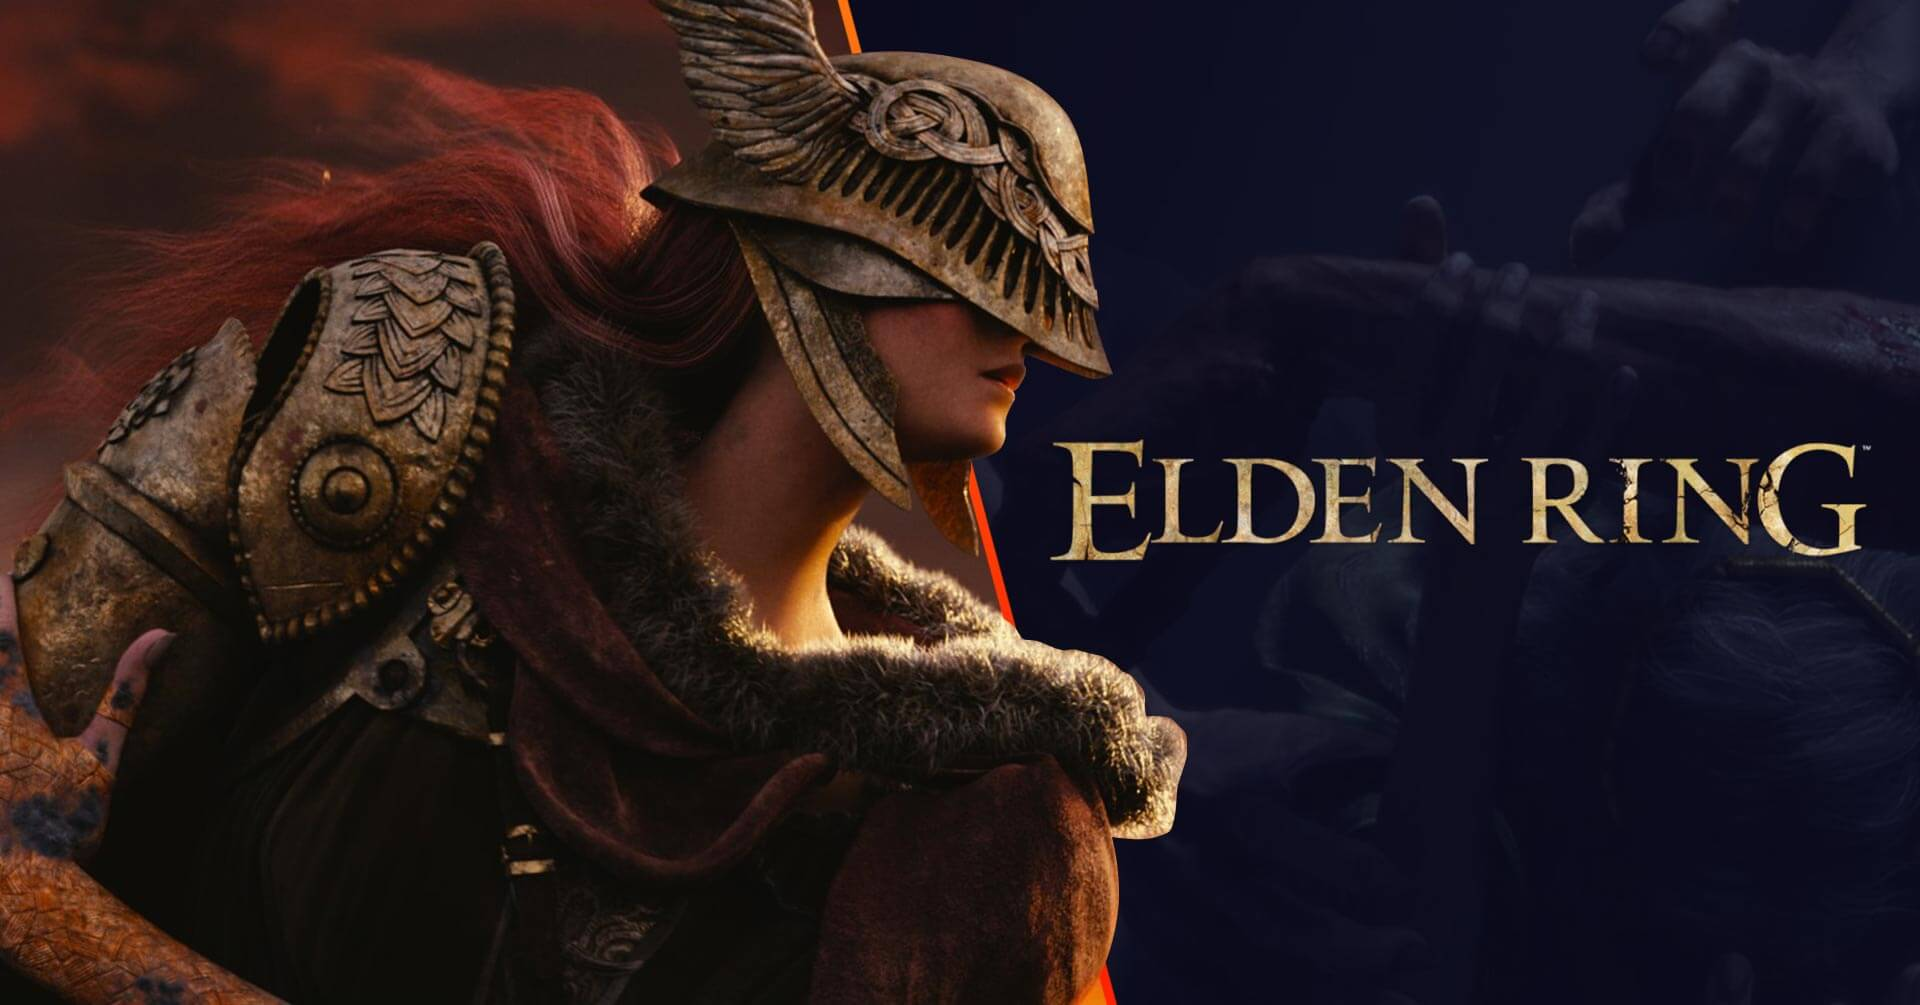 elden-ring-logo